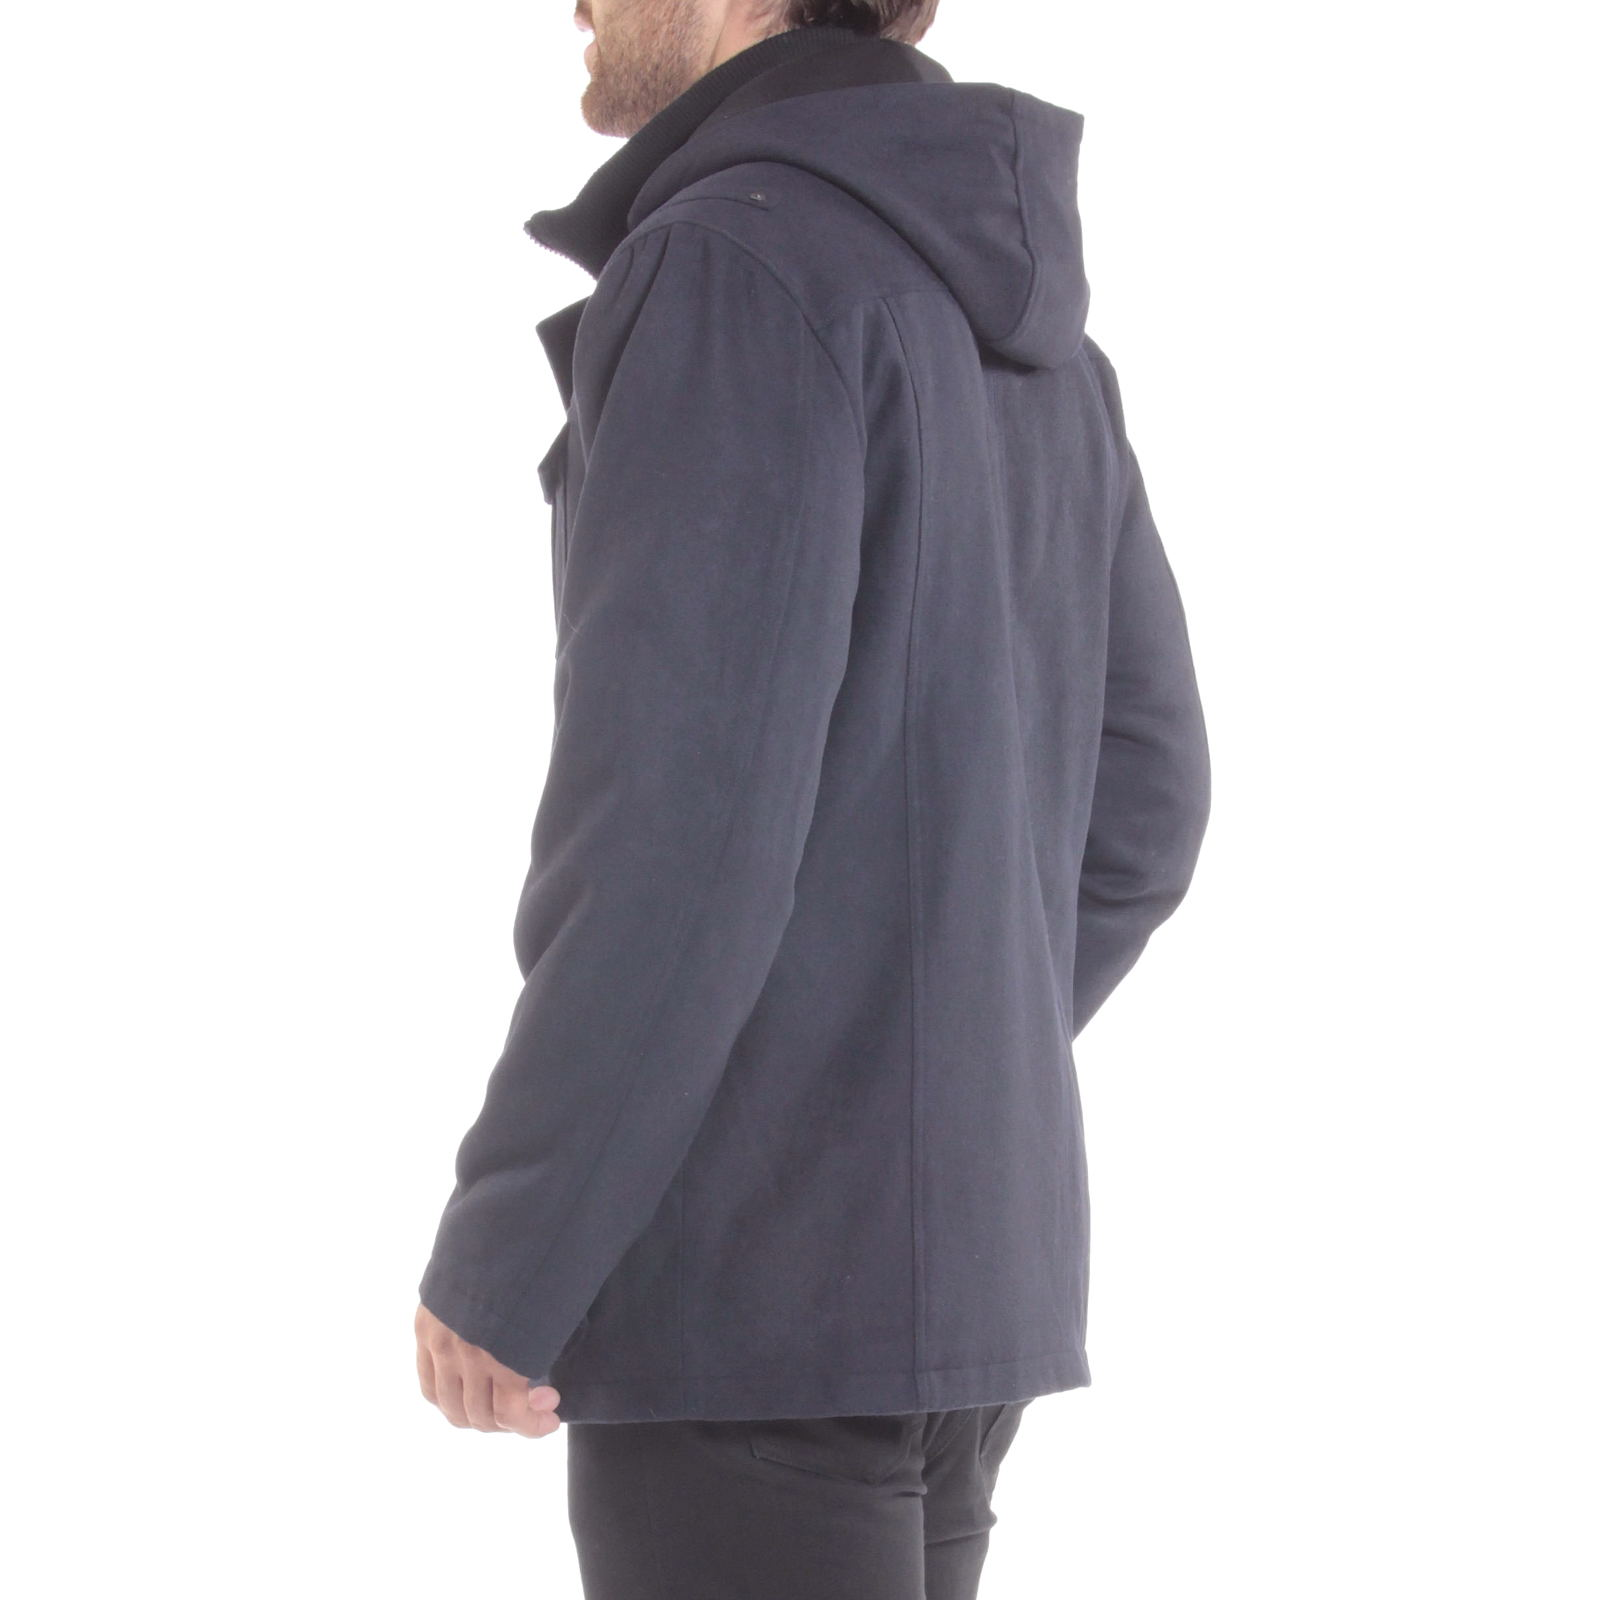 Alpine-Swiss-Noah-Mens-Wool-Coat-Parka-with-Removable-Hood-Jacket-Cargo-Pockets thumbnail 47